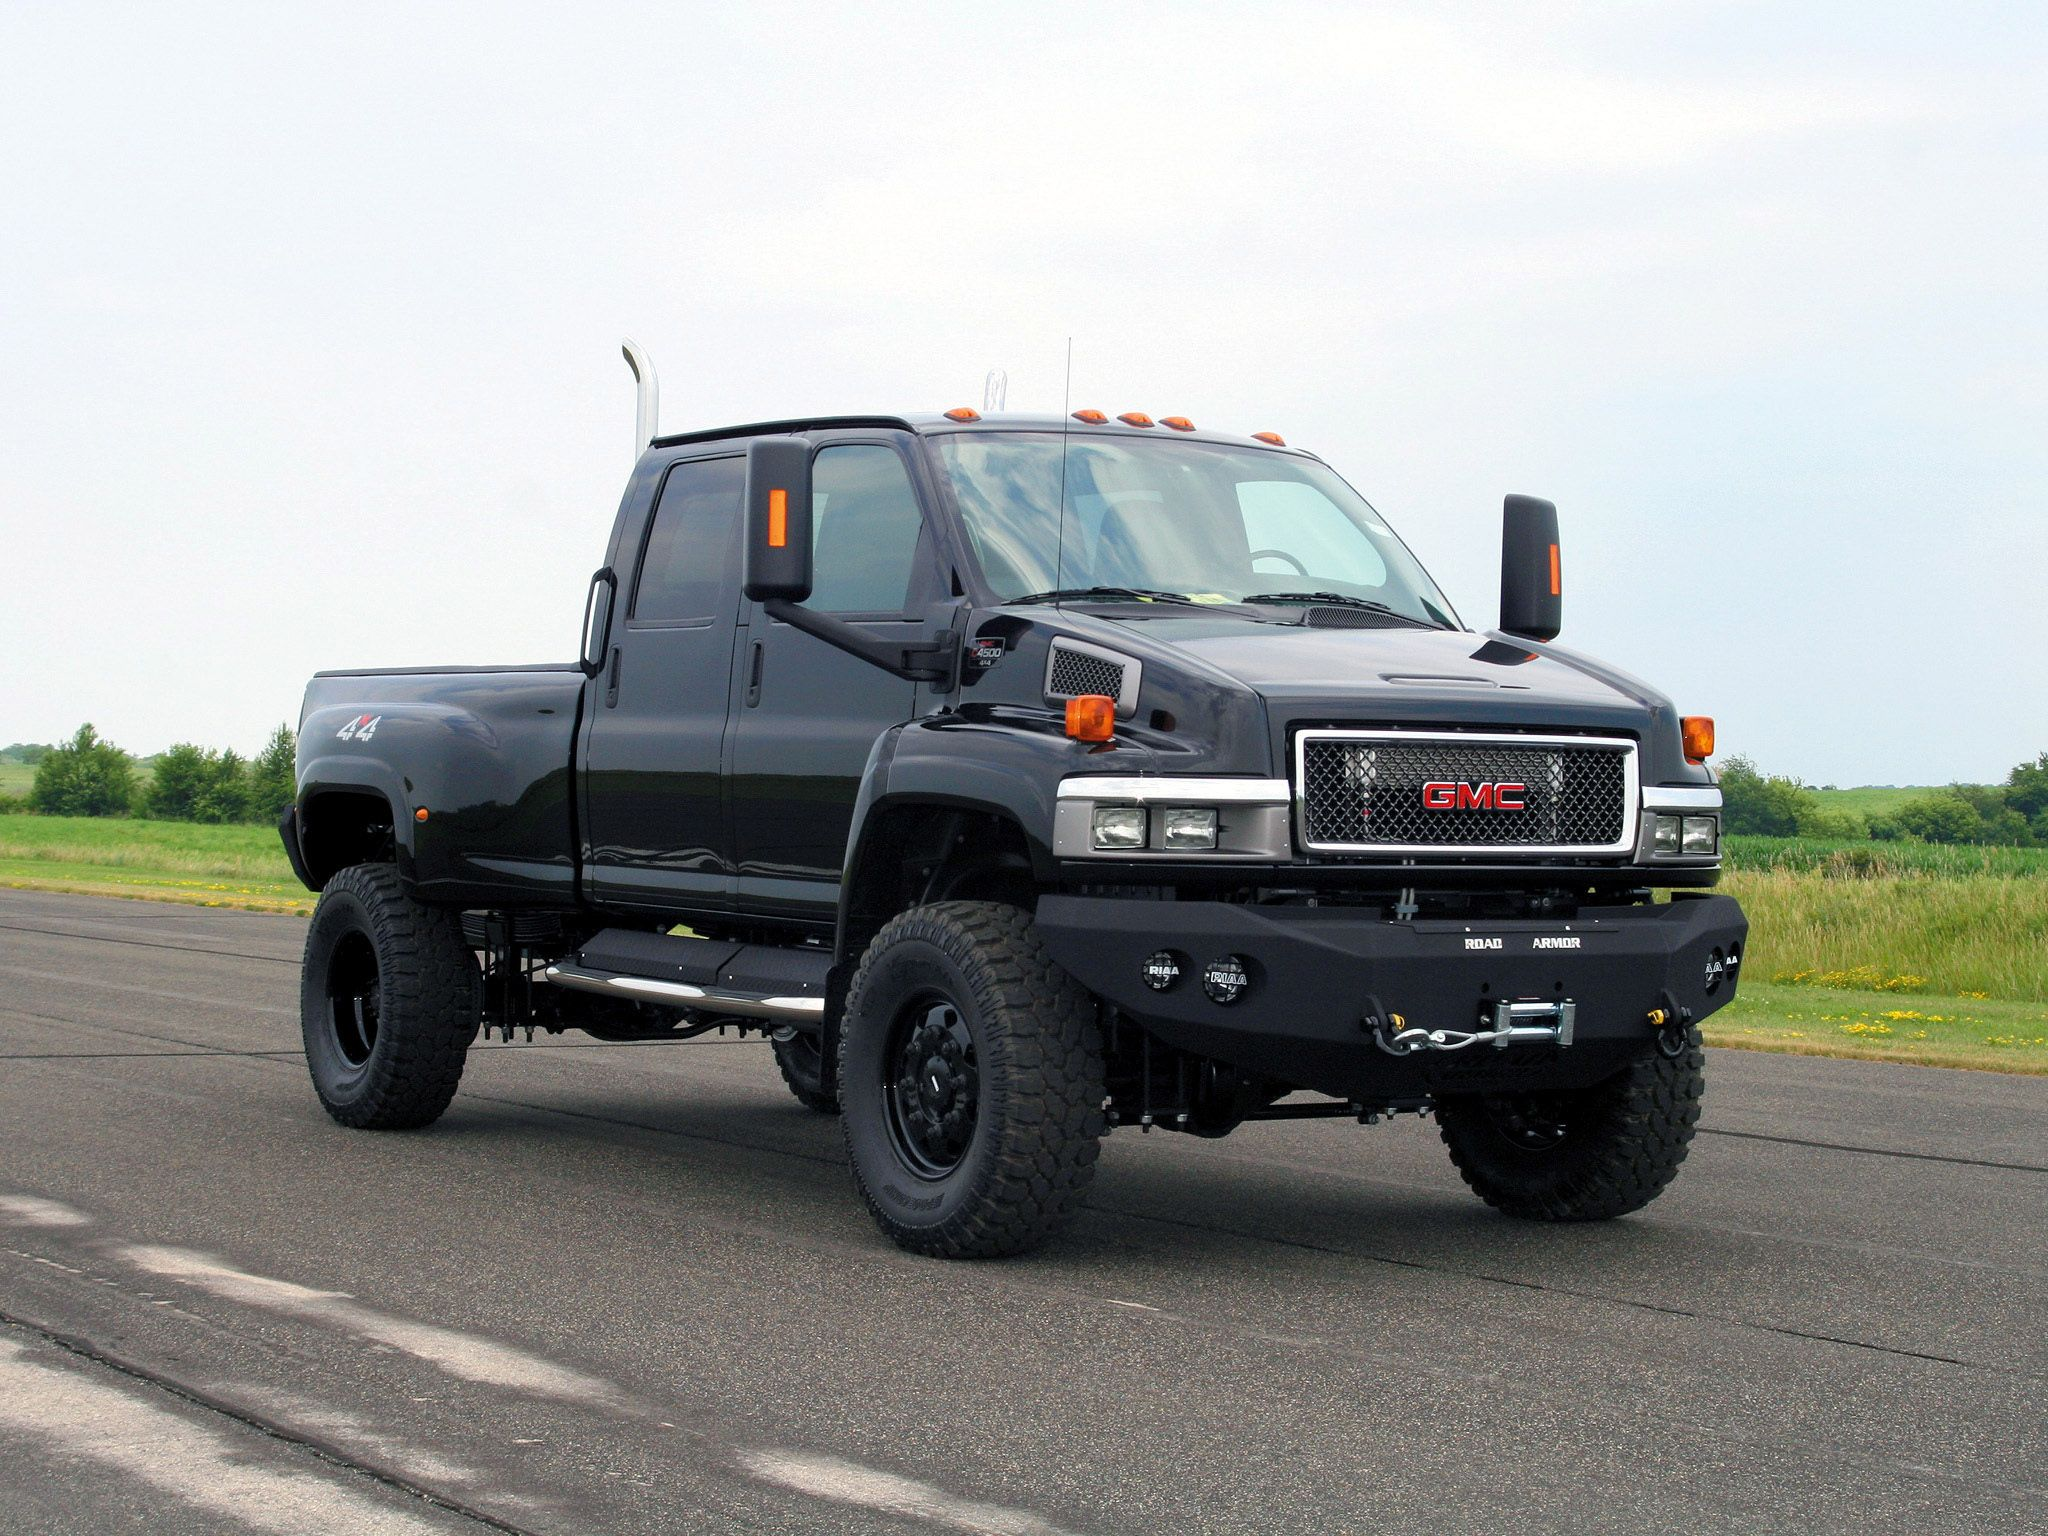 GMC c4500 Pickup Truck NEED IT!!!!! My dream truck